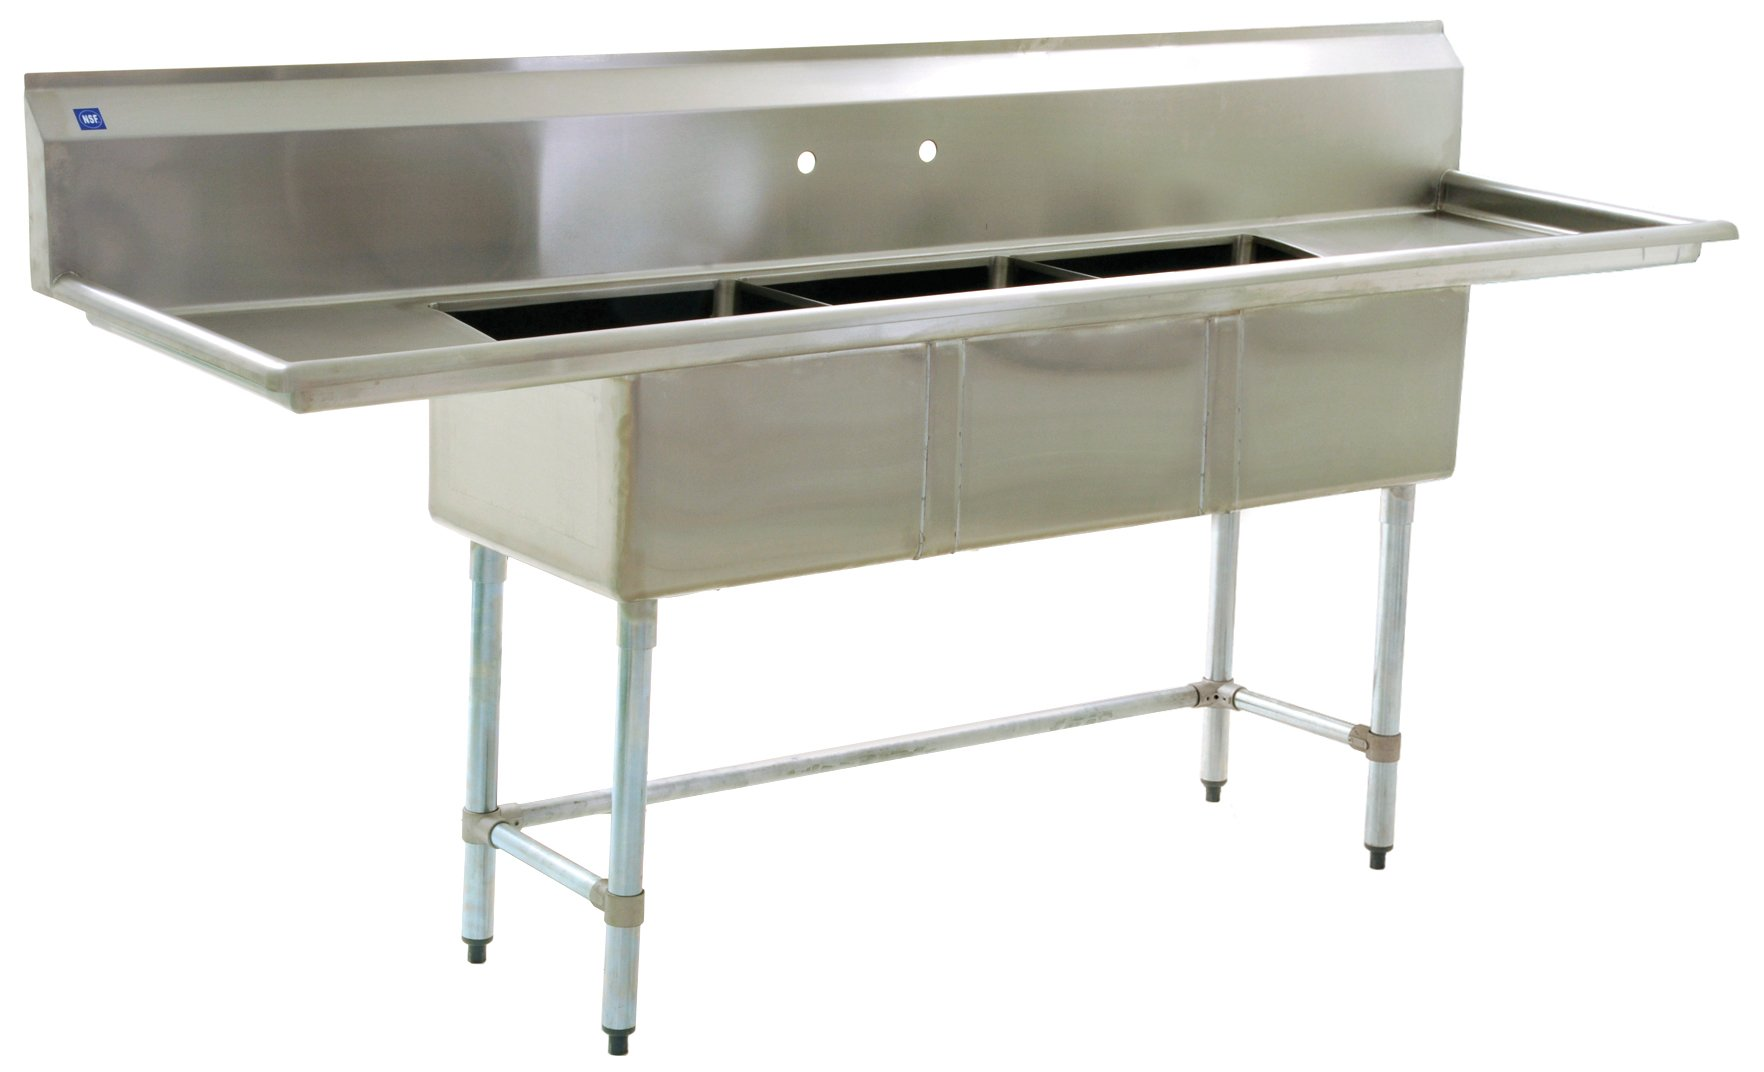 BlendPort BPS-1854-3-18-FC Economy Sink, with Cross Brace, SS Legs/Gussets, 3 Compartment, 23.5'' W x 90'' L, 2 Drain Boards, Silver